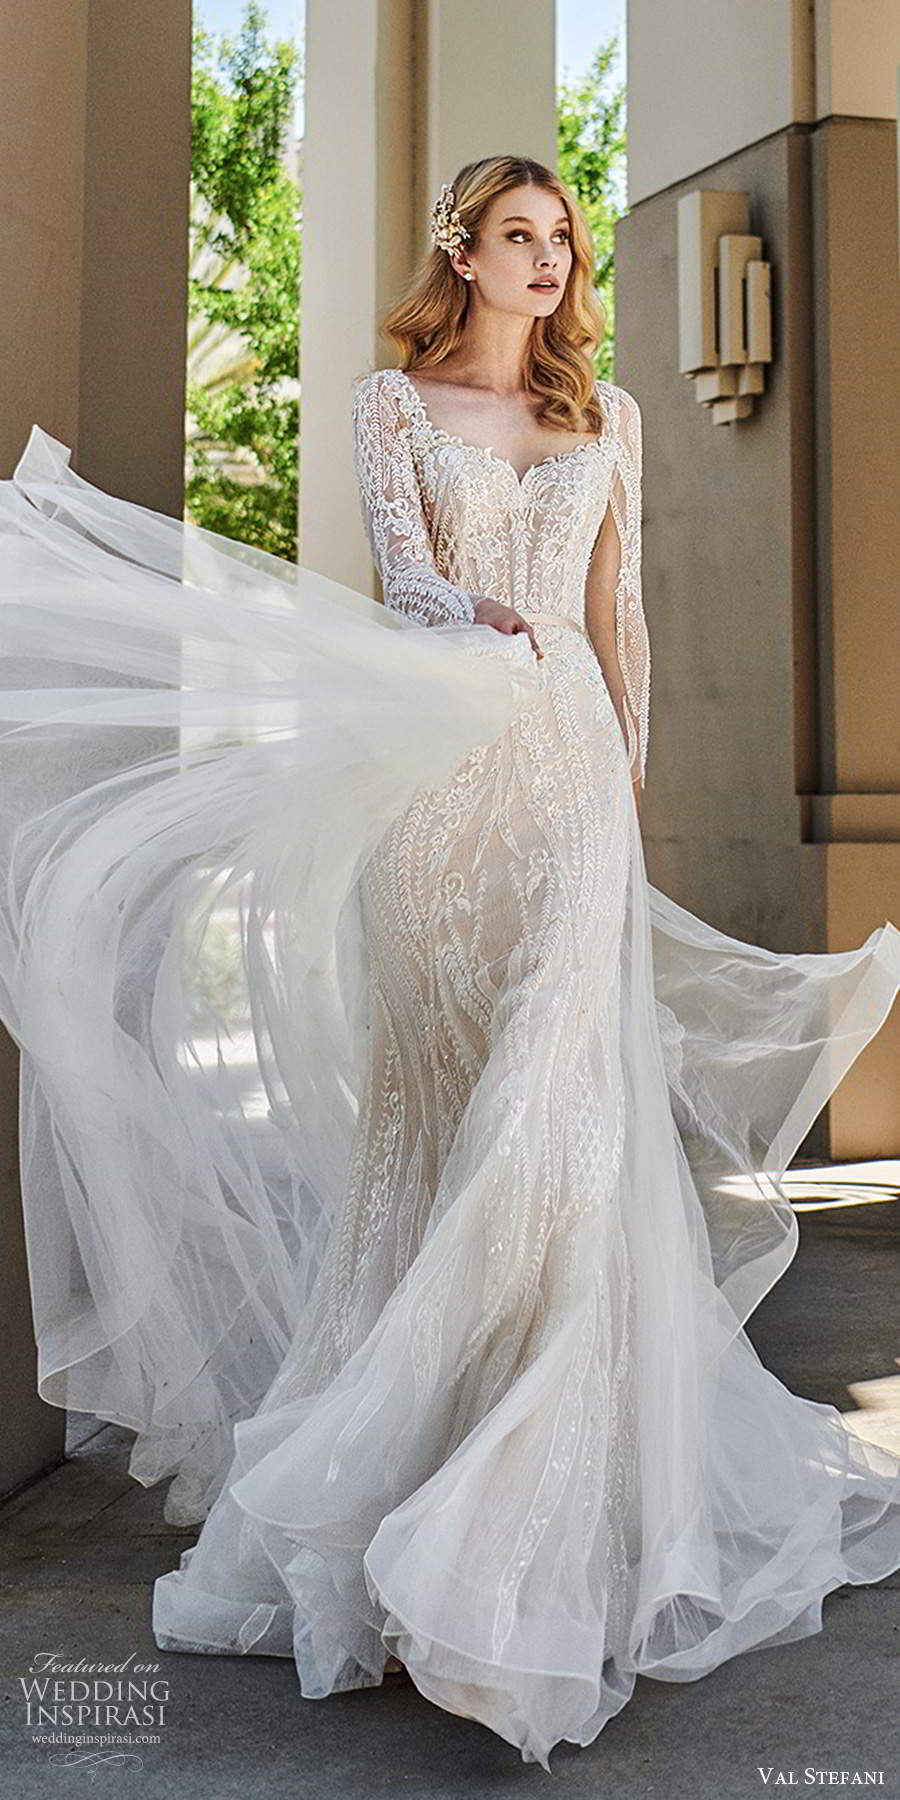 val stefani spring 2020 bridal illusion long sleeves sweetheart neckline fully embellished modified a line mermaid lace wedding dress chapel train (3) mv